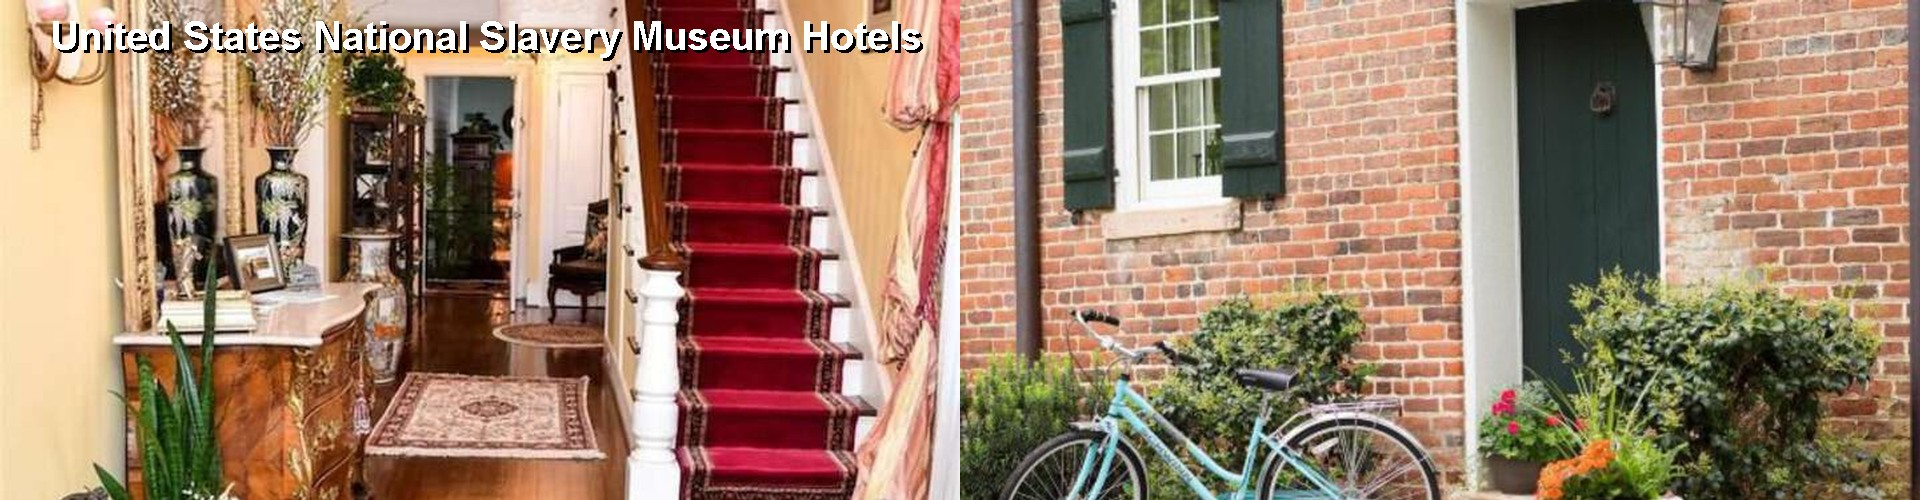 5 Best Hotels near United States National Slavery Museum